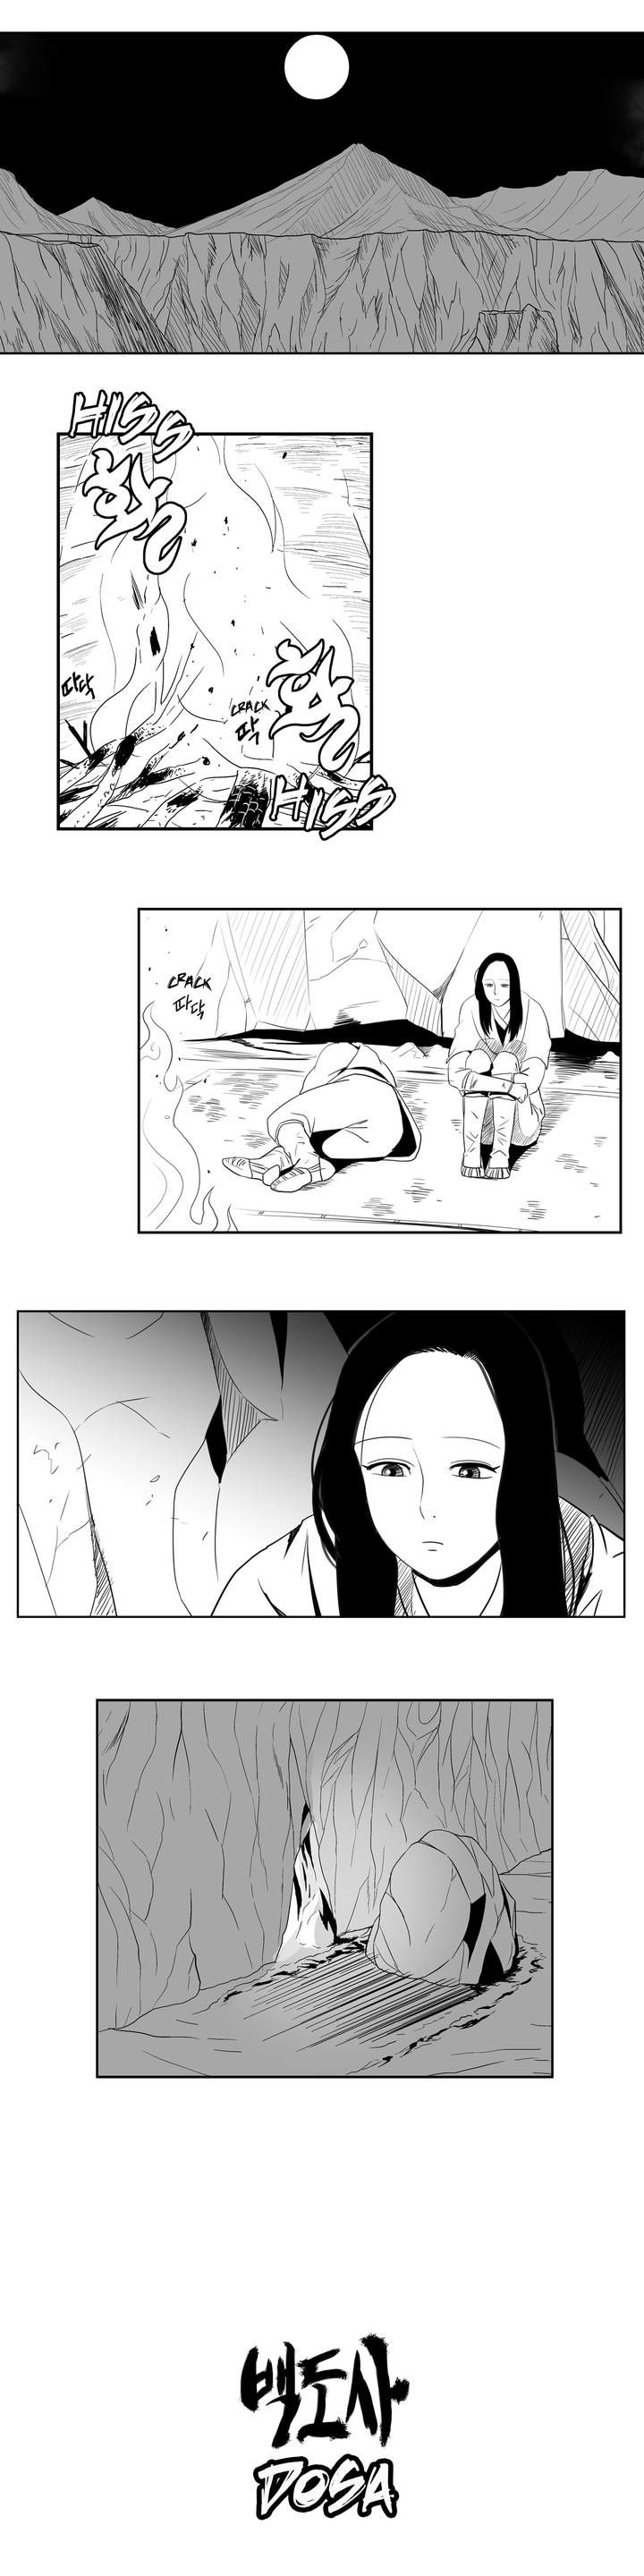 Dosa - Chapter 41